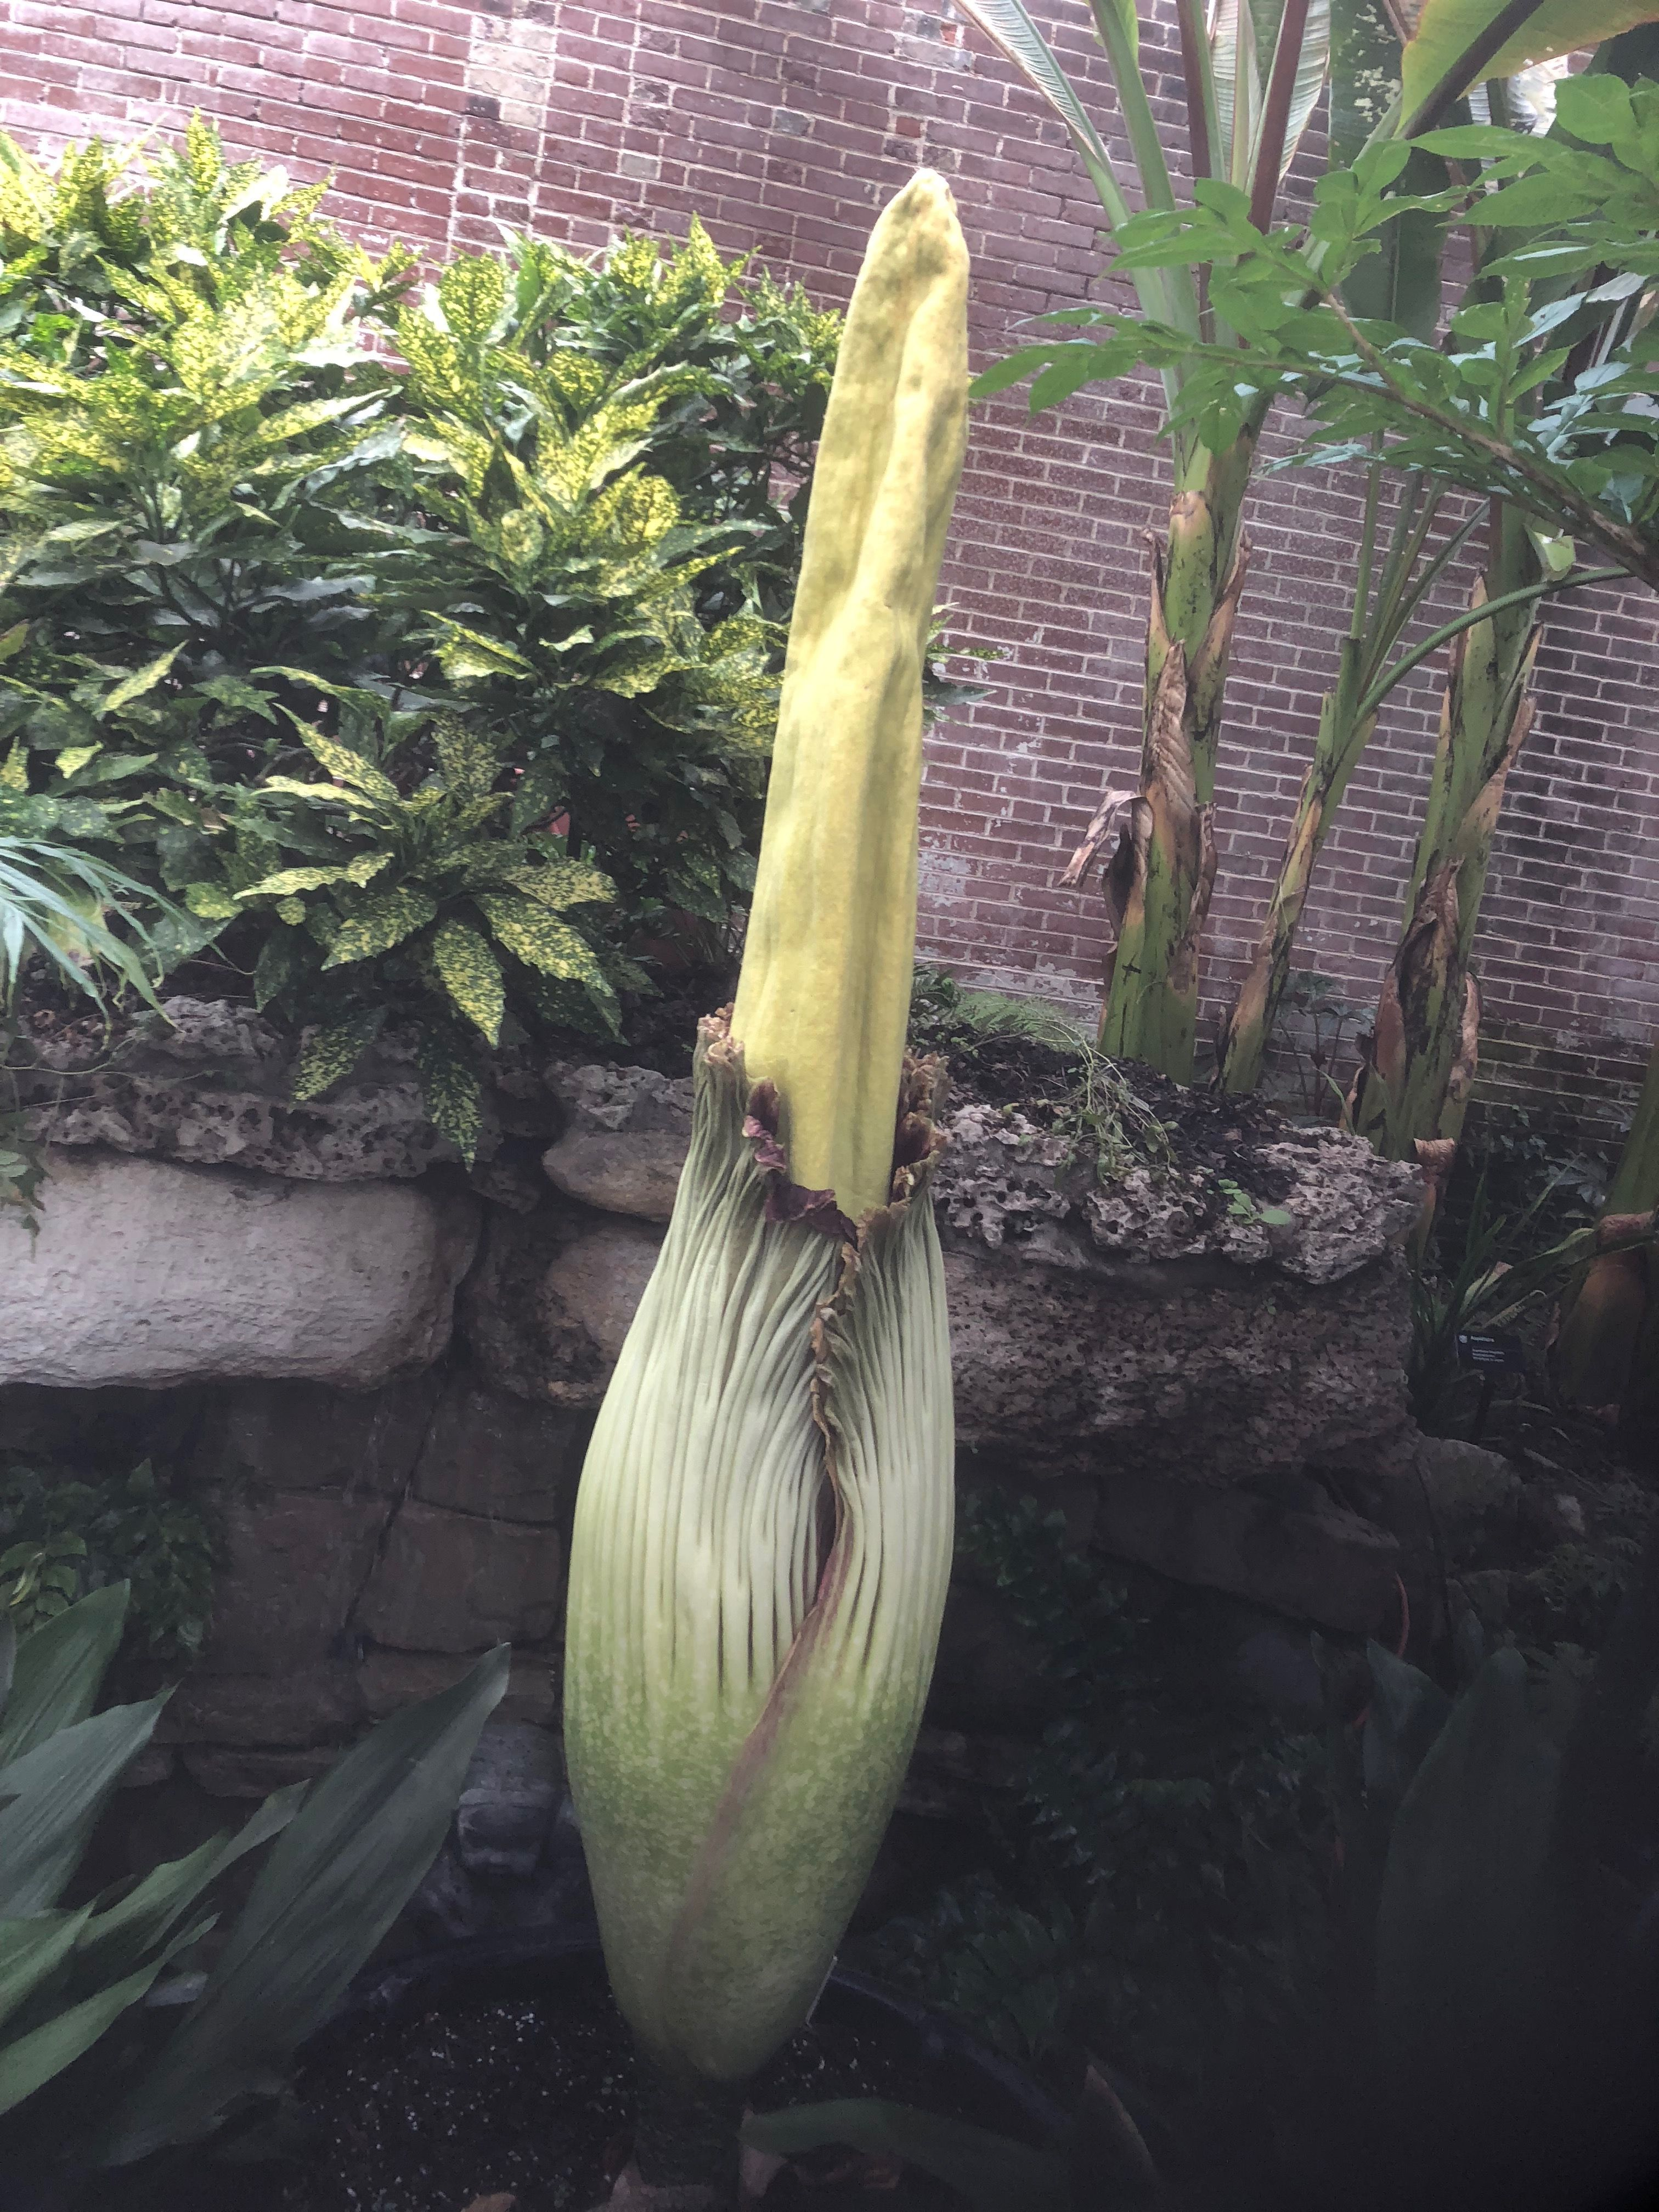 Titan arum it Is about to open and it will smell bad like